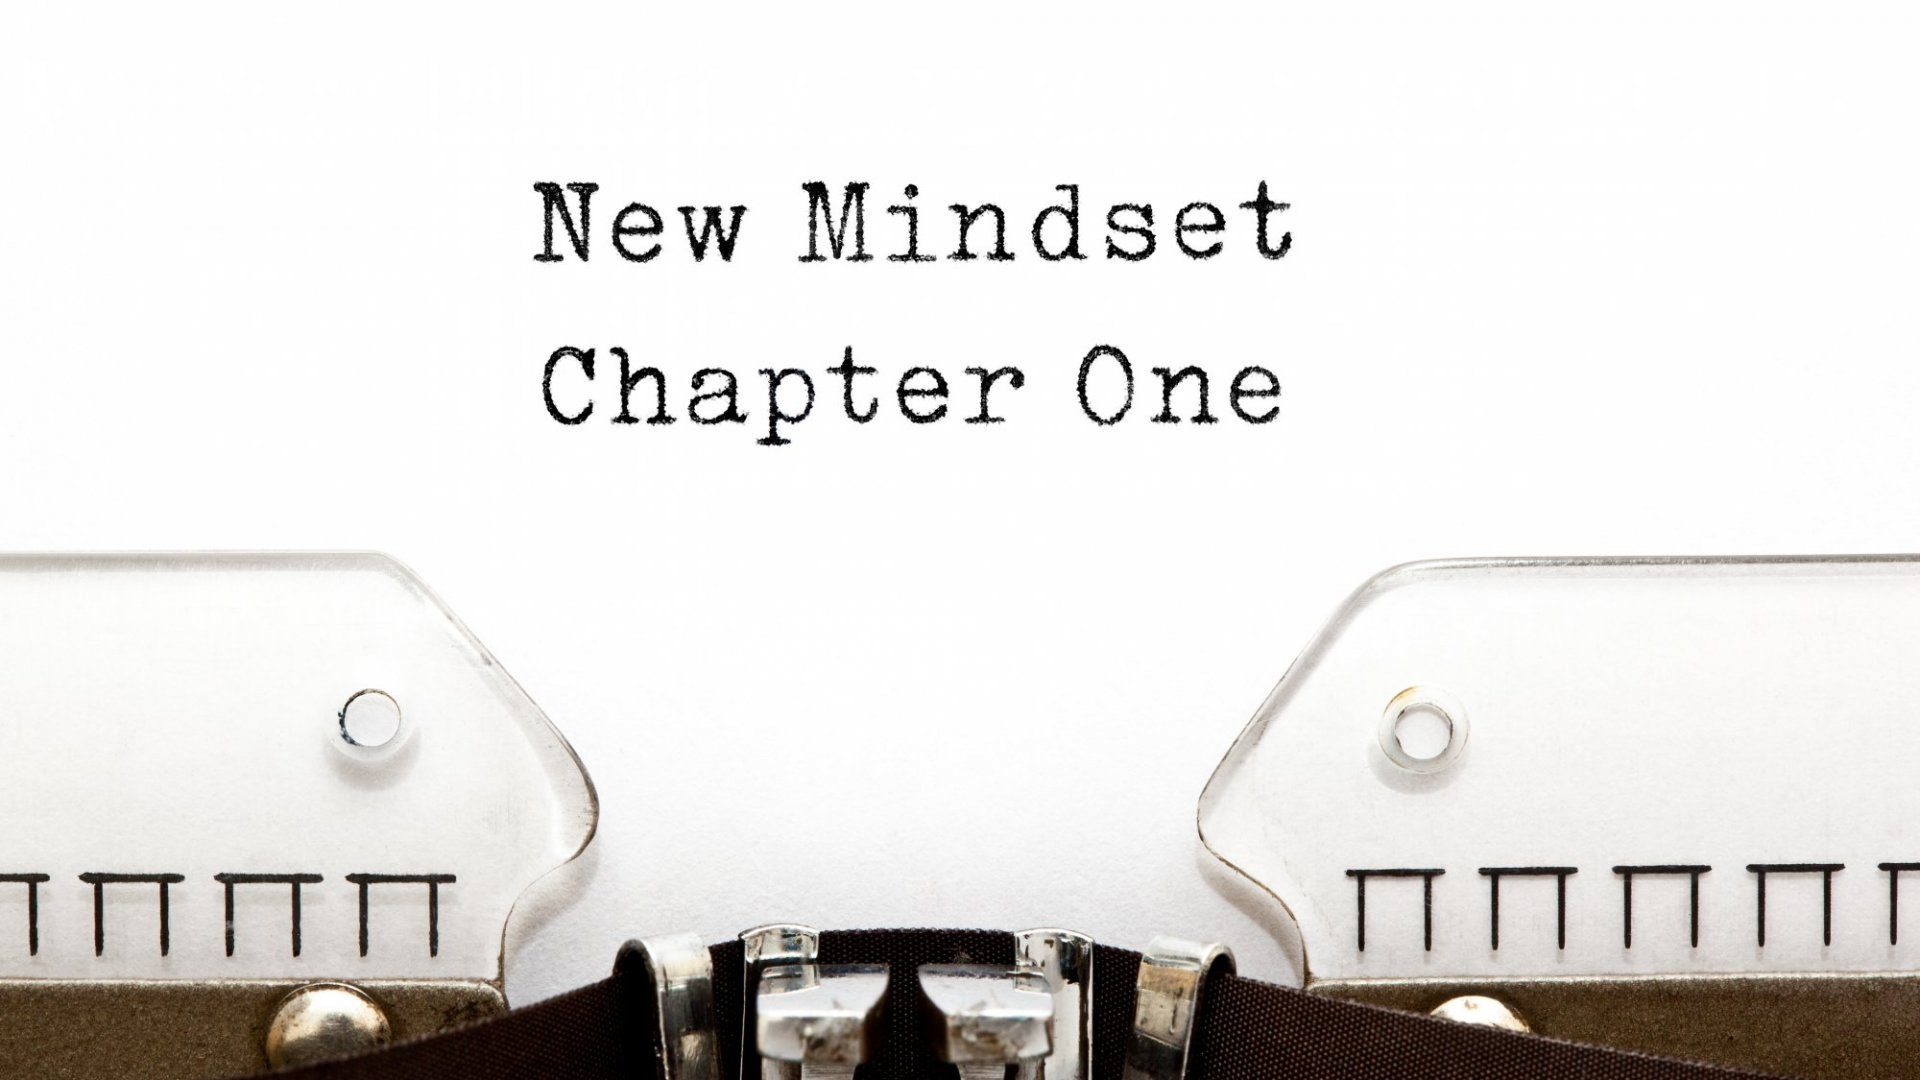 How to Transform Your Business Through the Growth Hacking Mindset